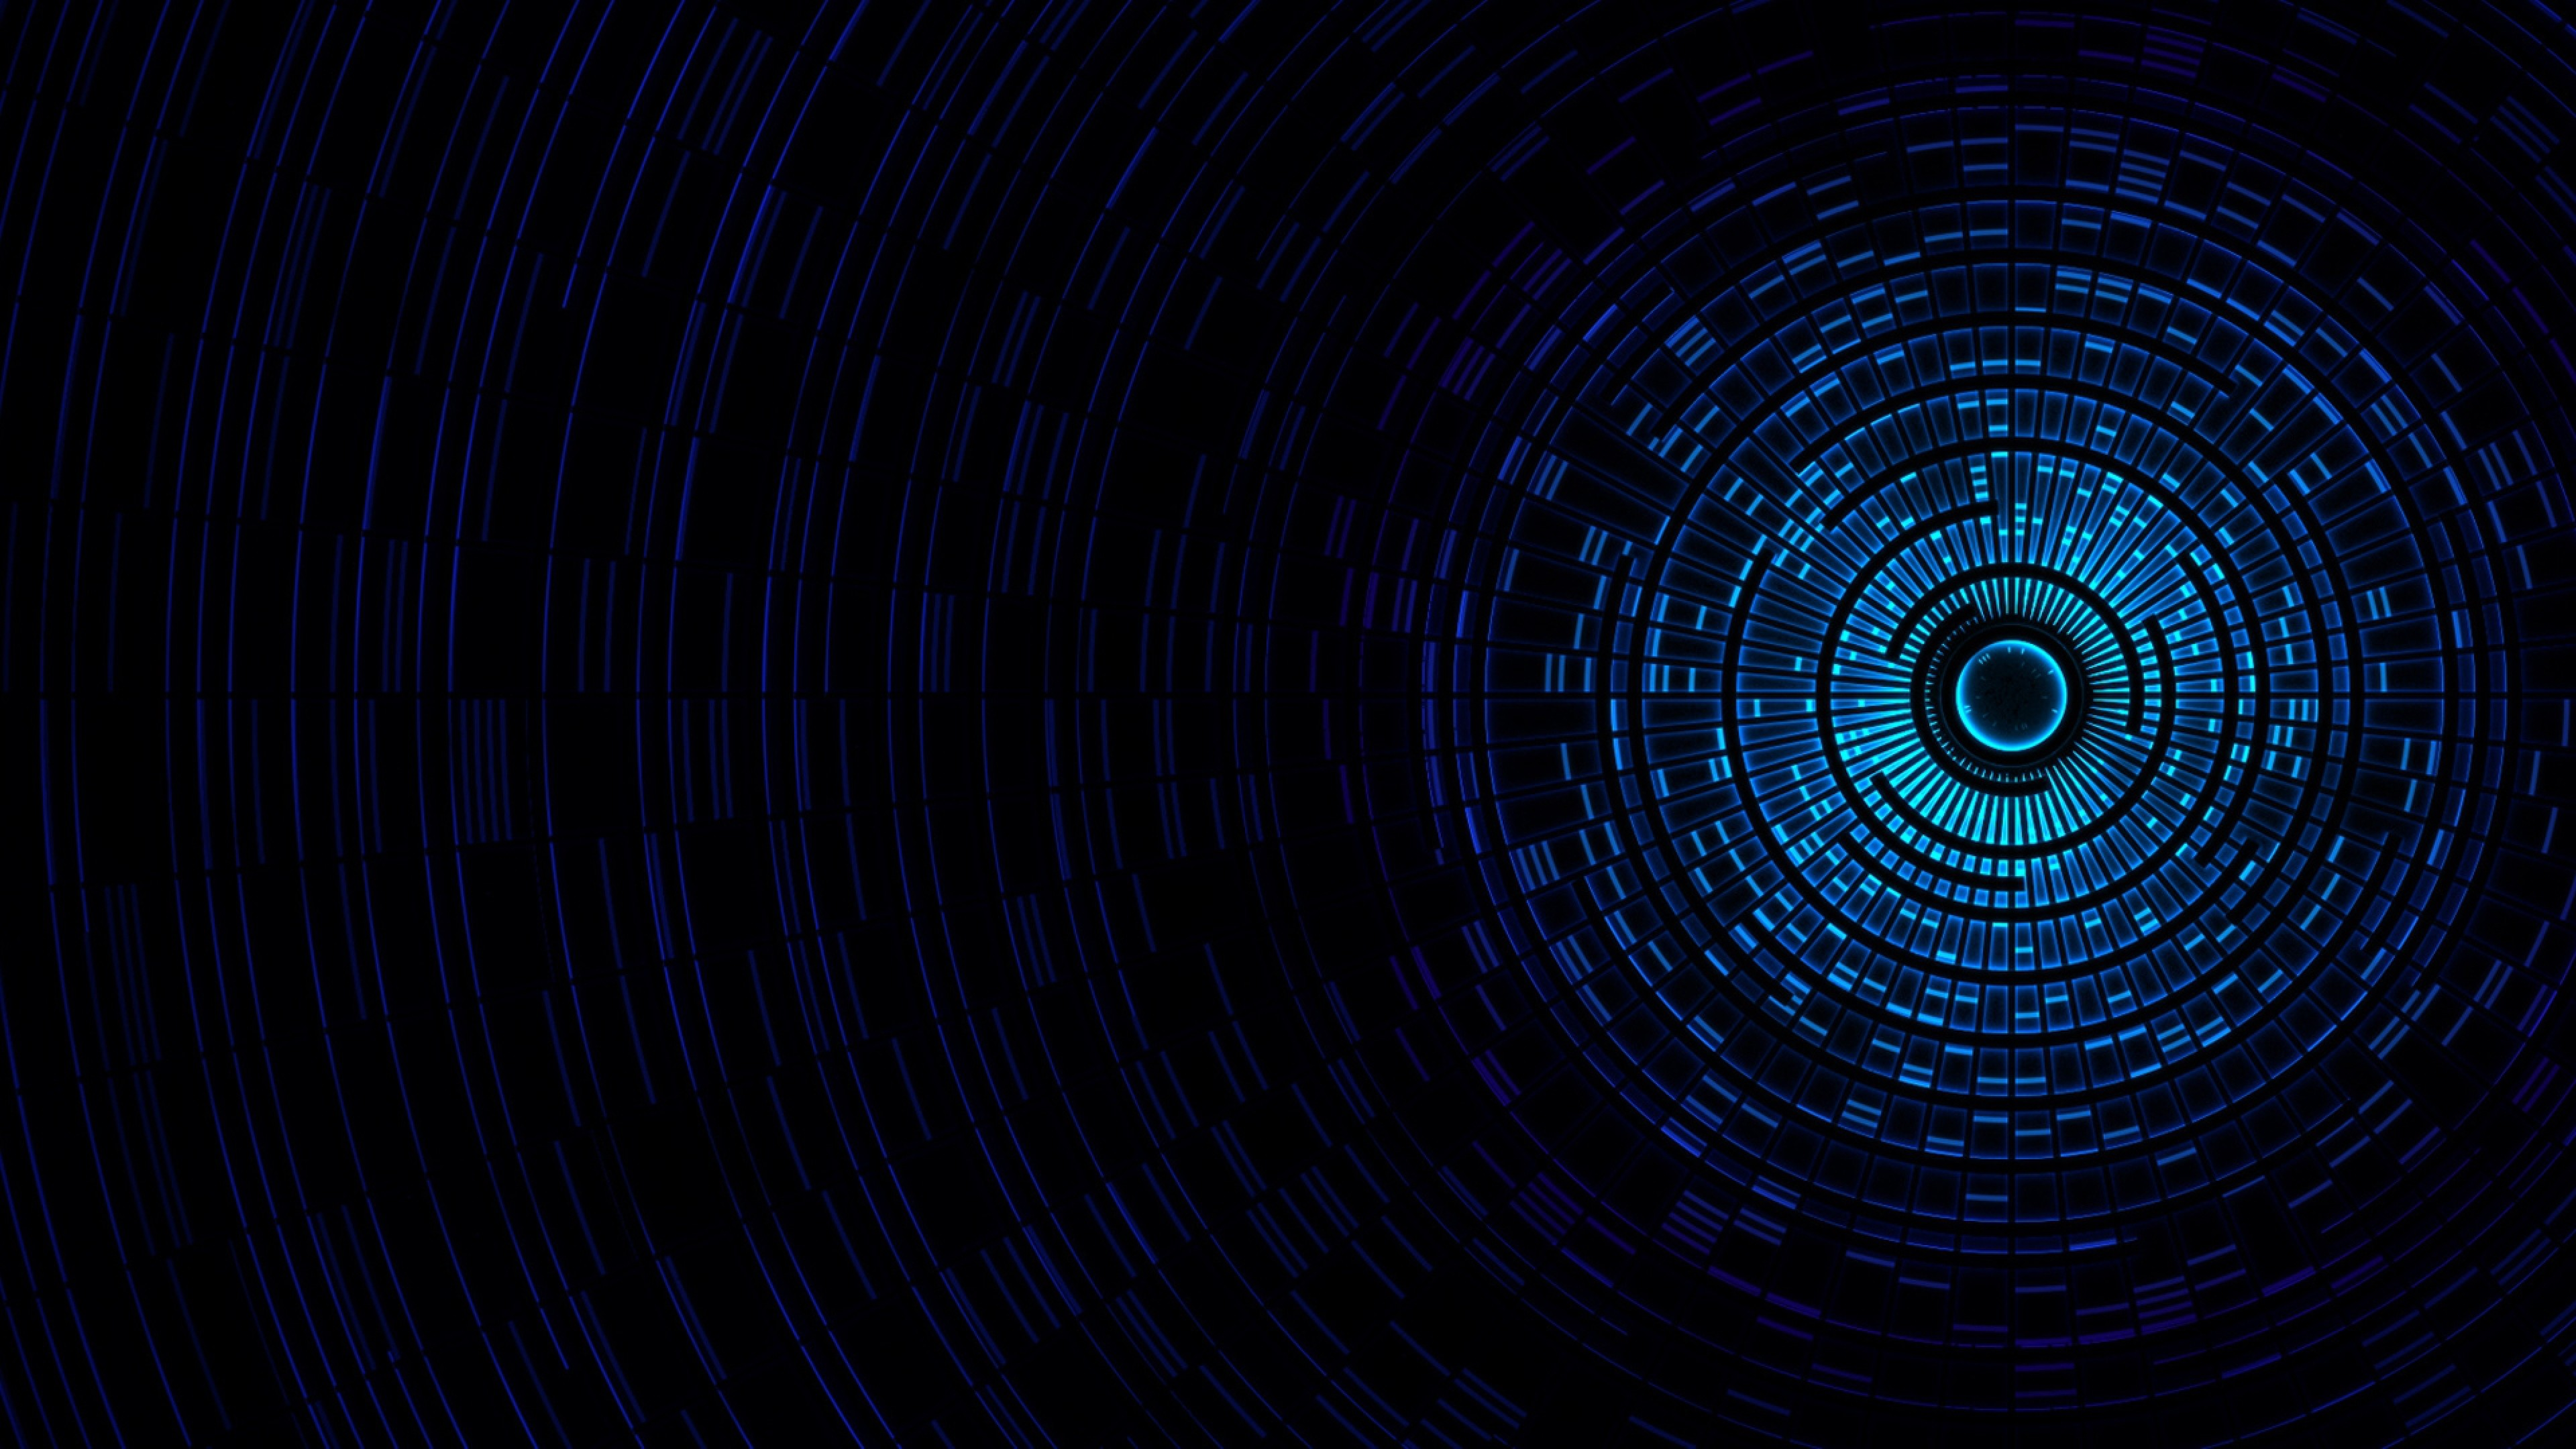 Blue Technology: Black And Blue Tech Wallpaper (64+ Images